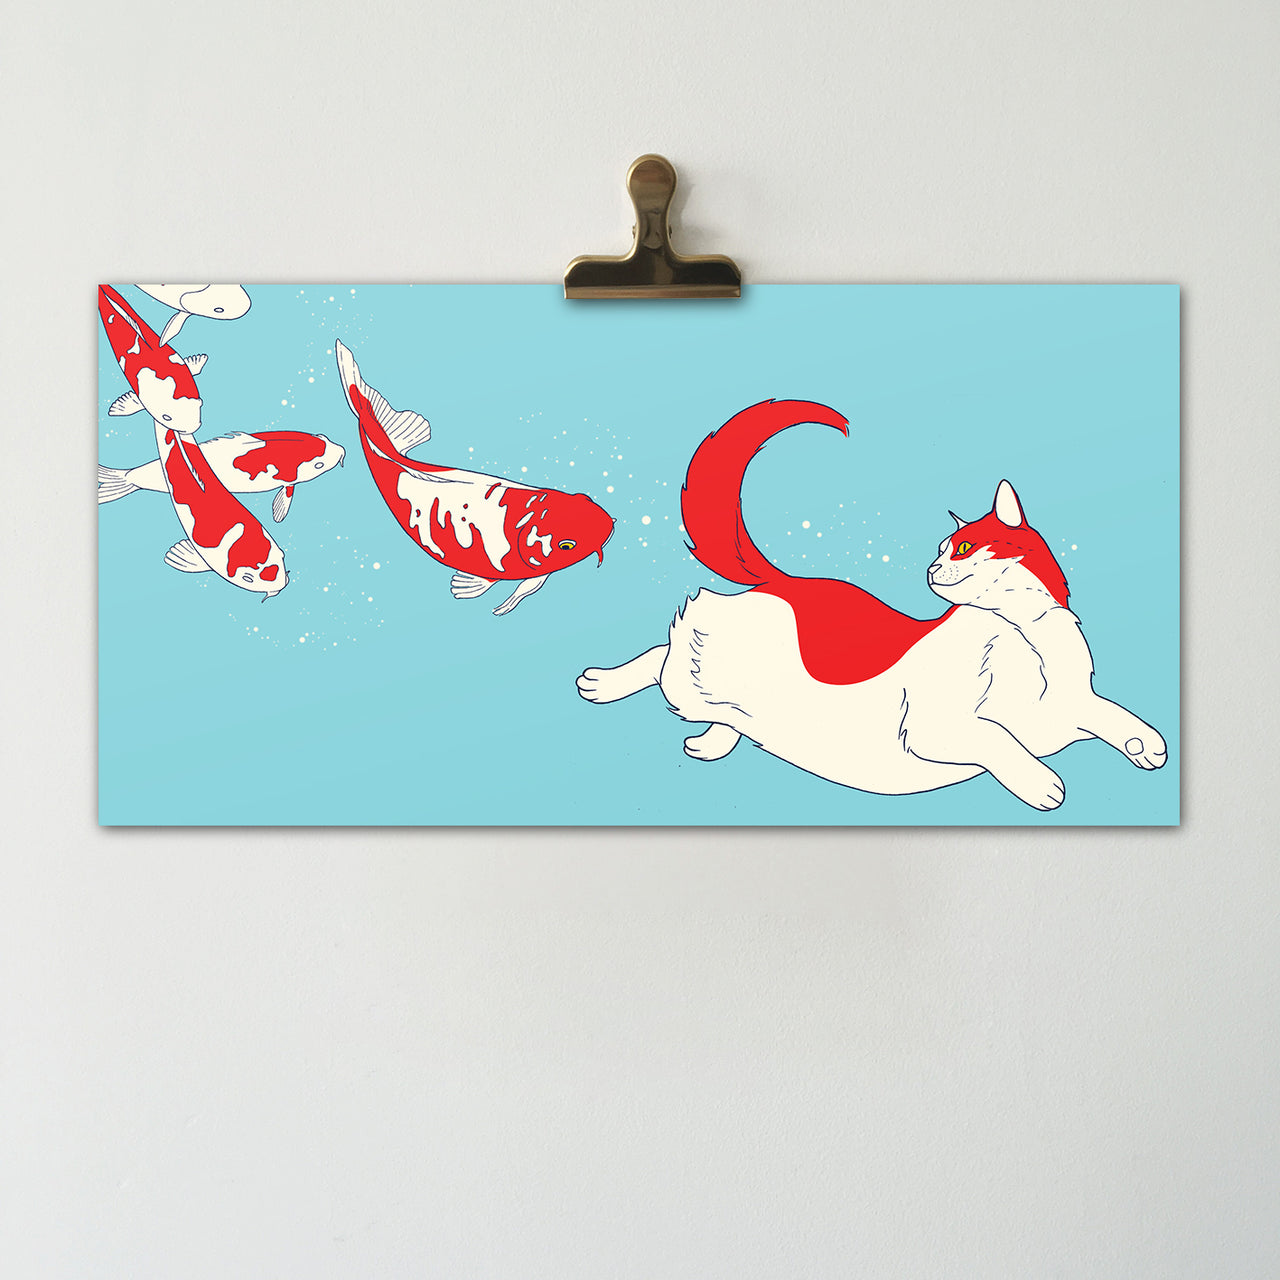 30% OFF SPRING SALE | Space Cats || Original Illustration Poster, Digital Print